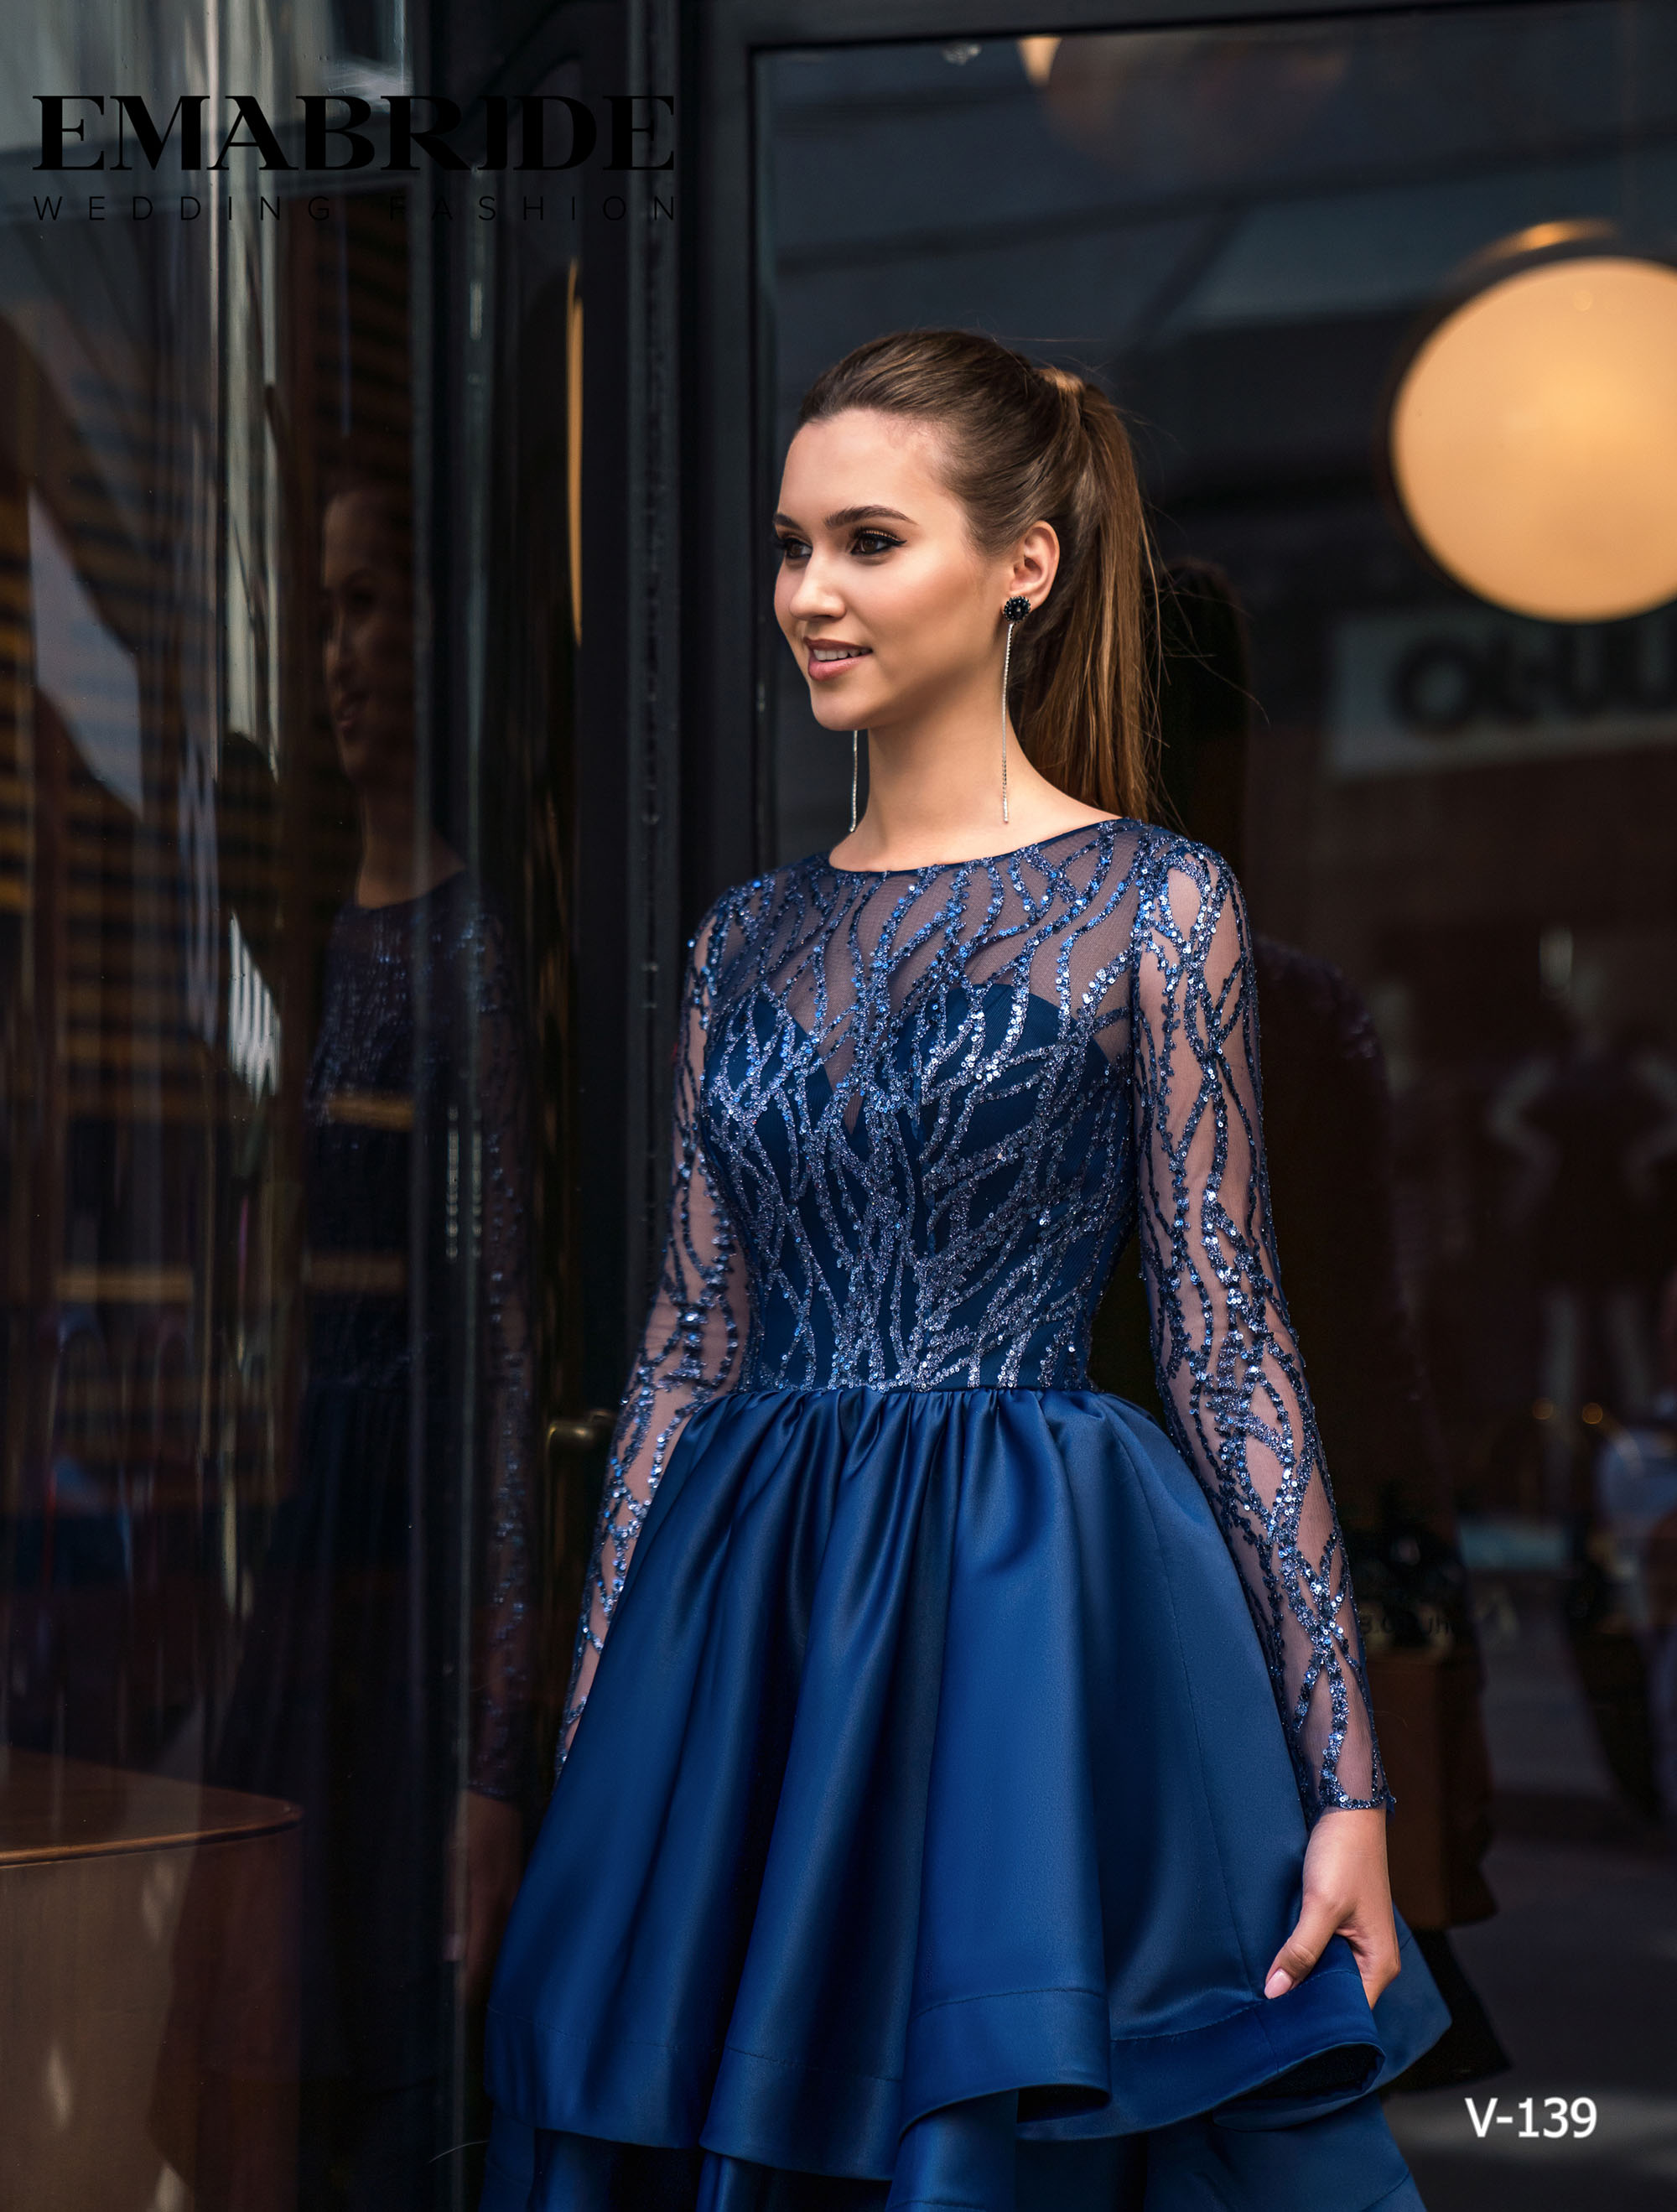 Model V-139 |  Buy evening dresses wholesale by the ukrainian manufacturer Emabride-1